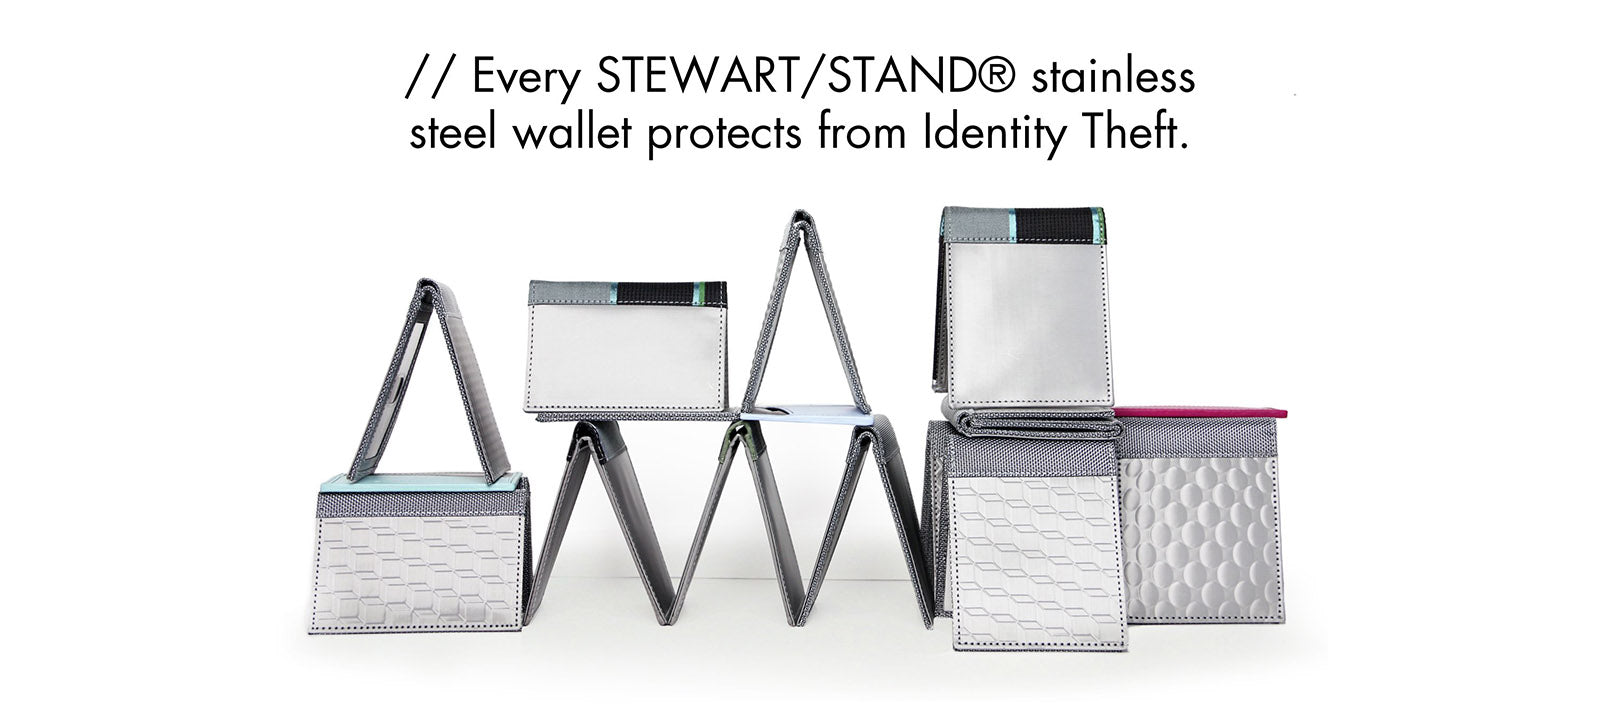 Stewart Stand Stainless Steel Wallets